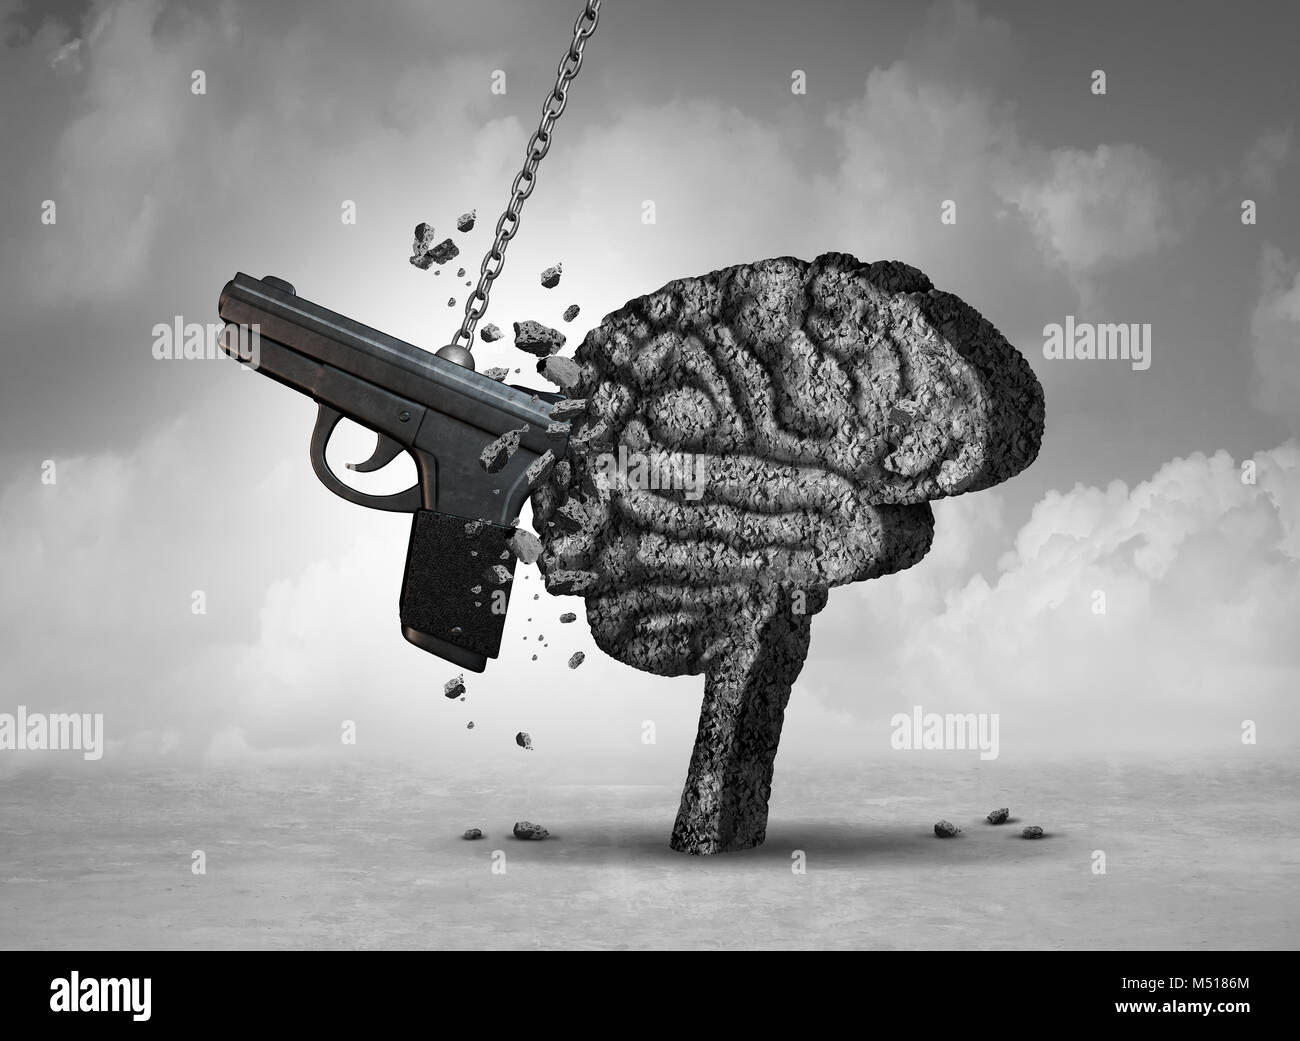 Gun violence and mental illness health concept as a psychiatric brain disorder risk with 3D illustration elements. - Stock Image